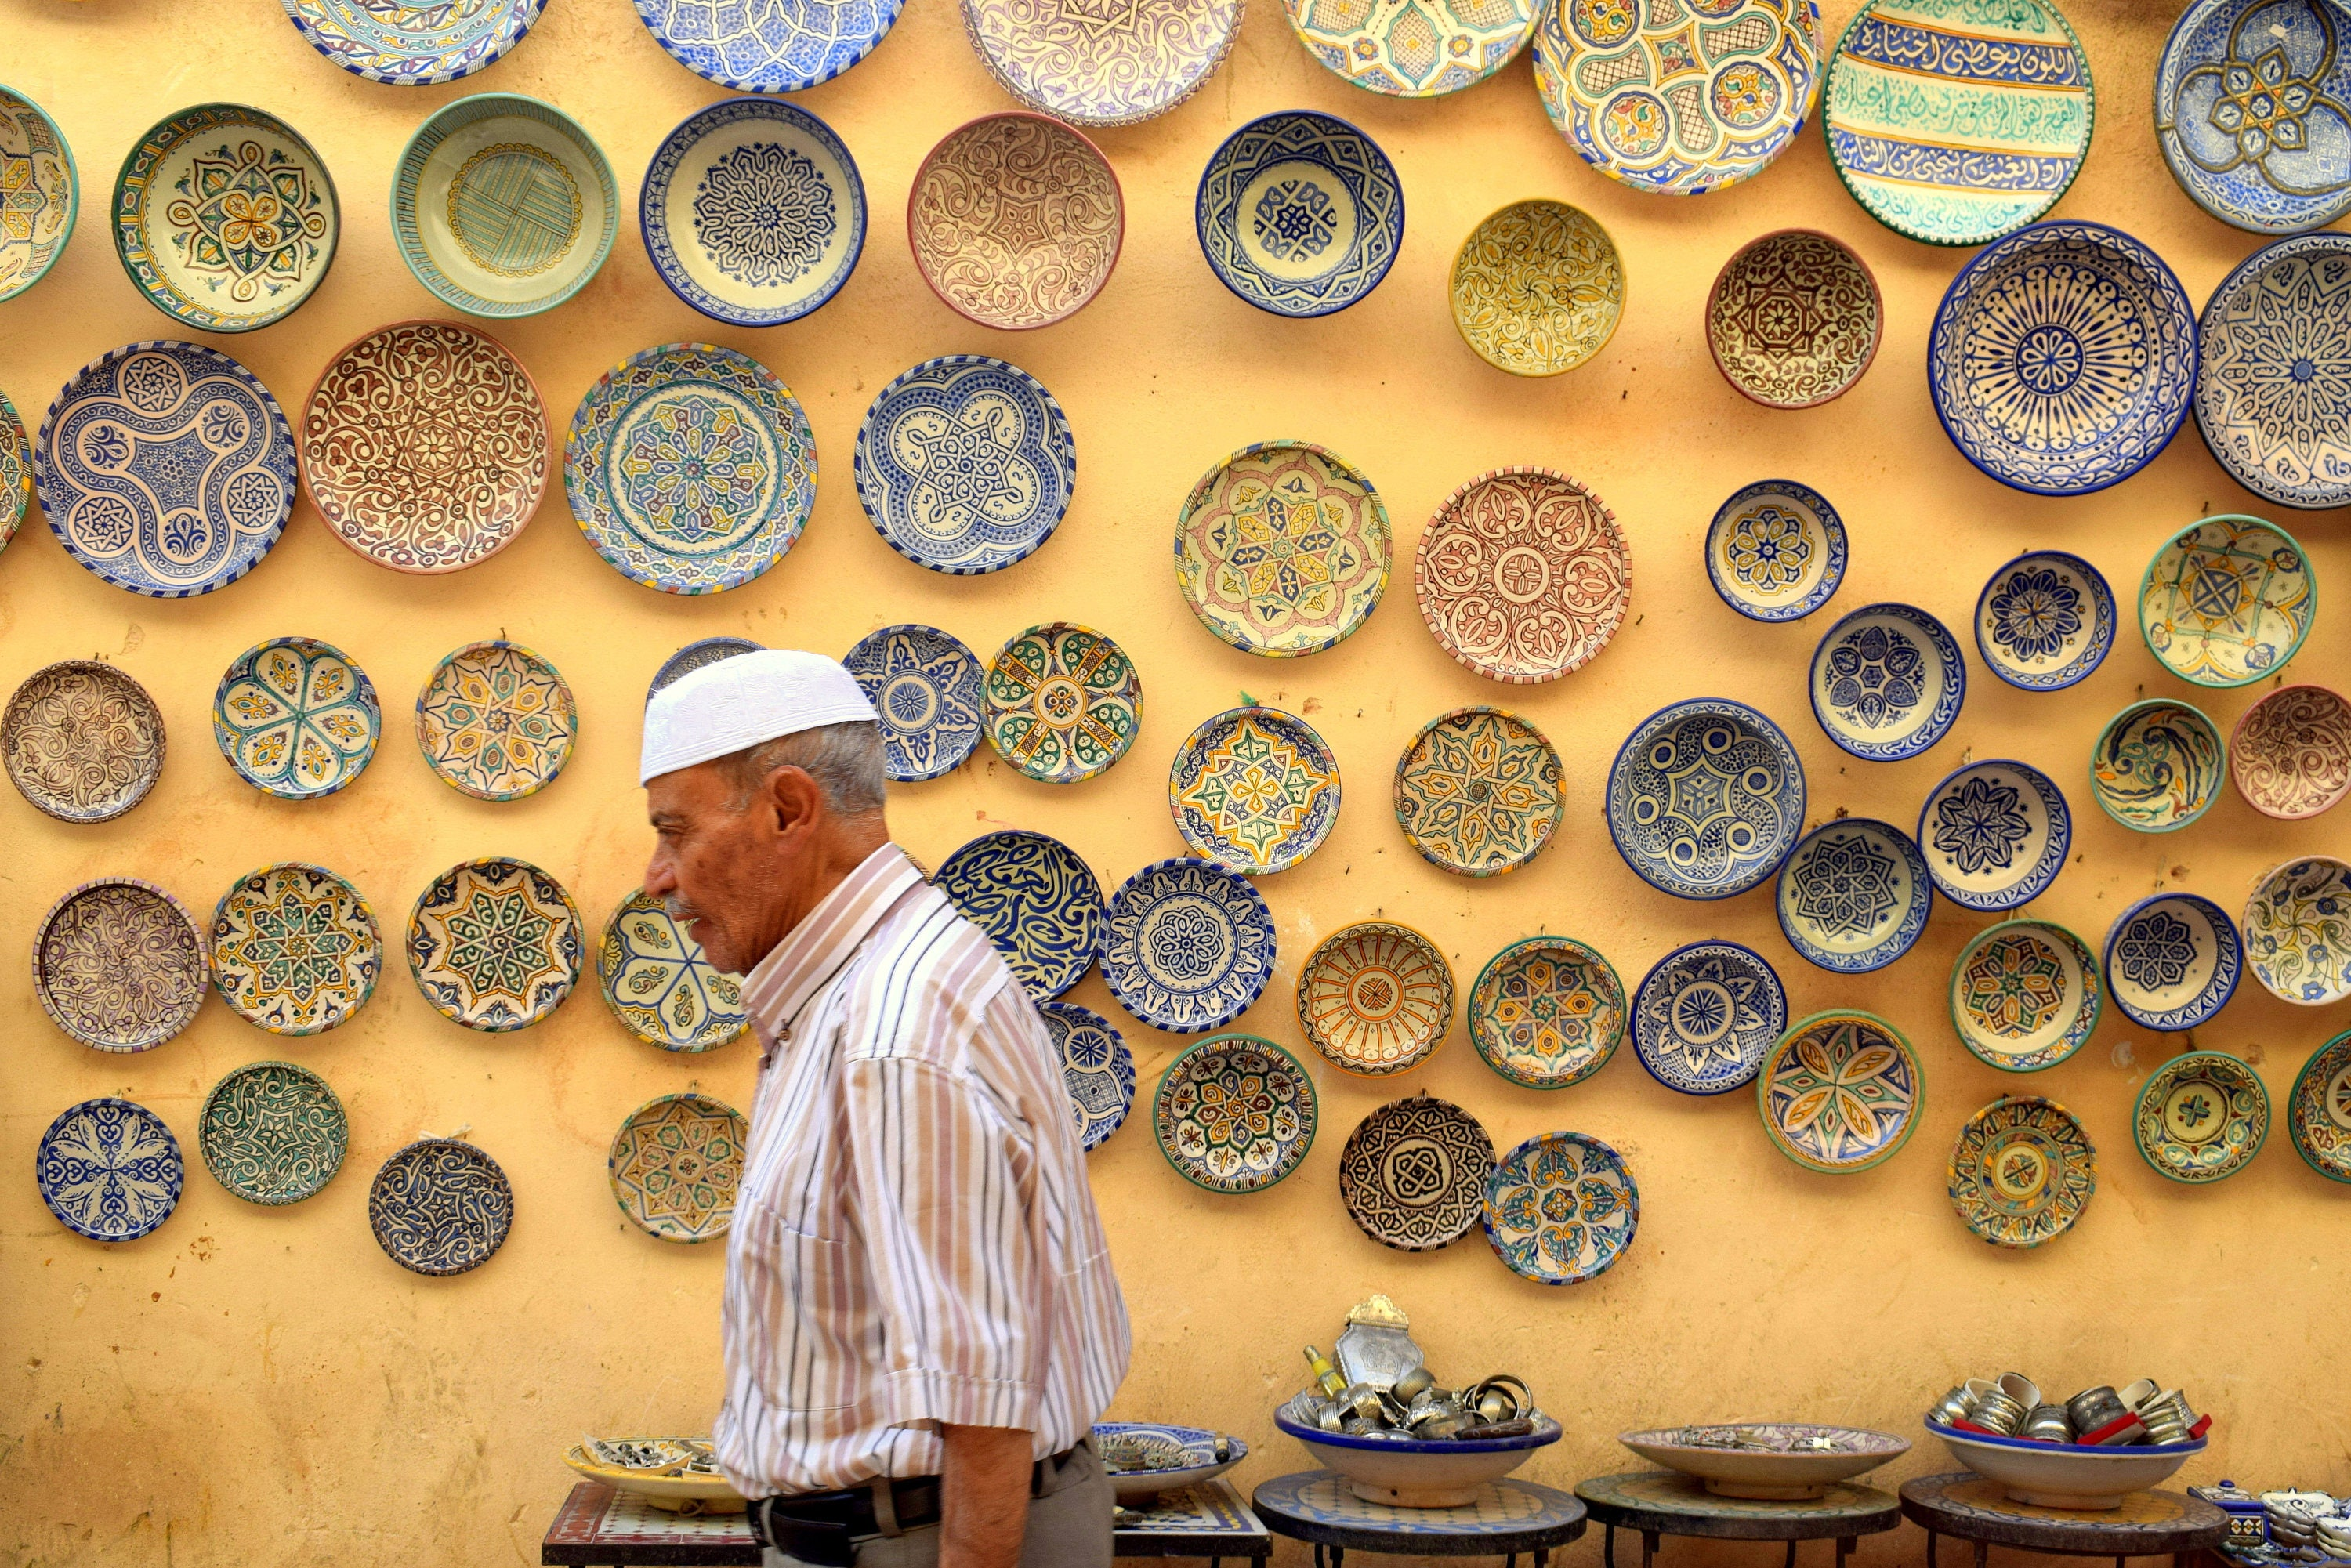 Vintage Decorative Plates Yellow Morocco Street Photography